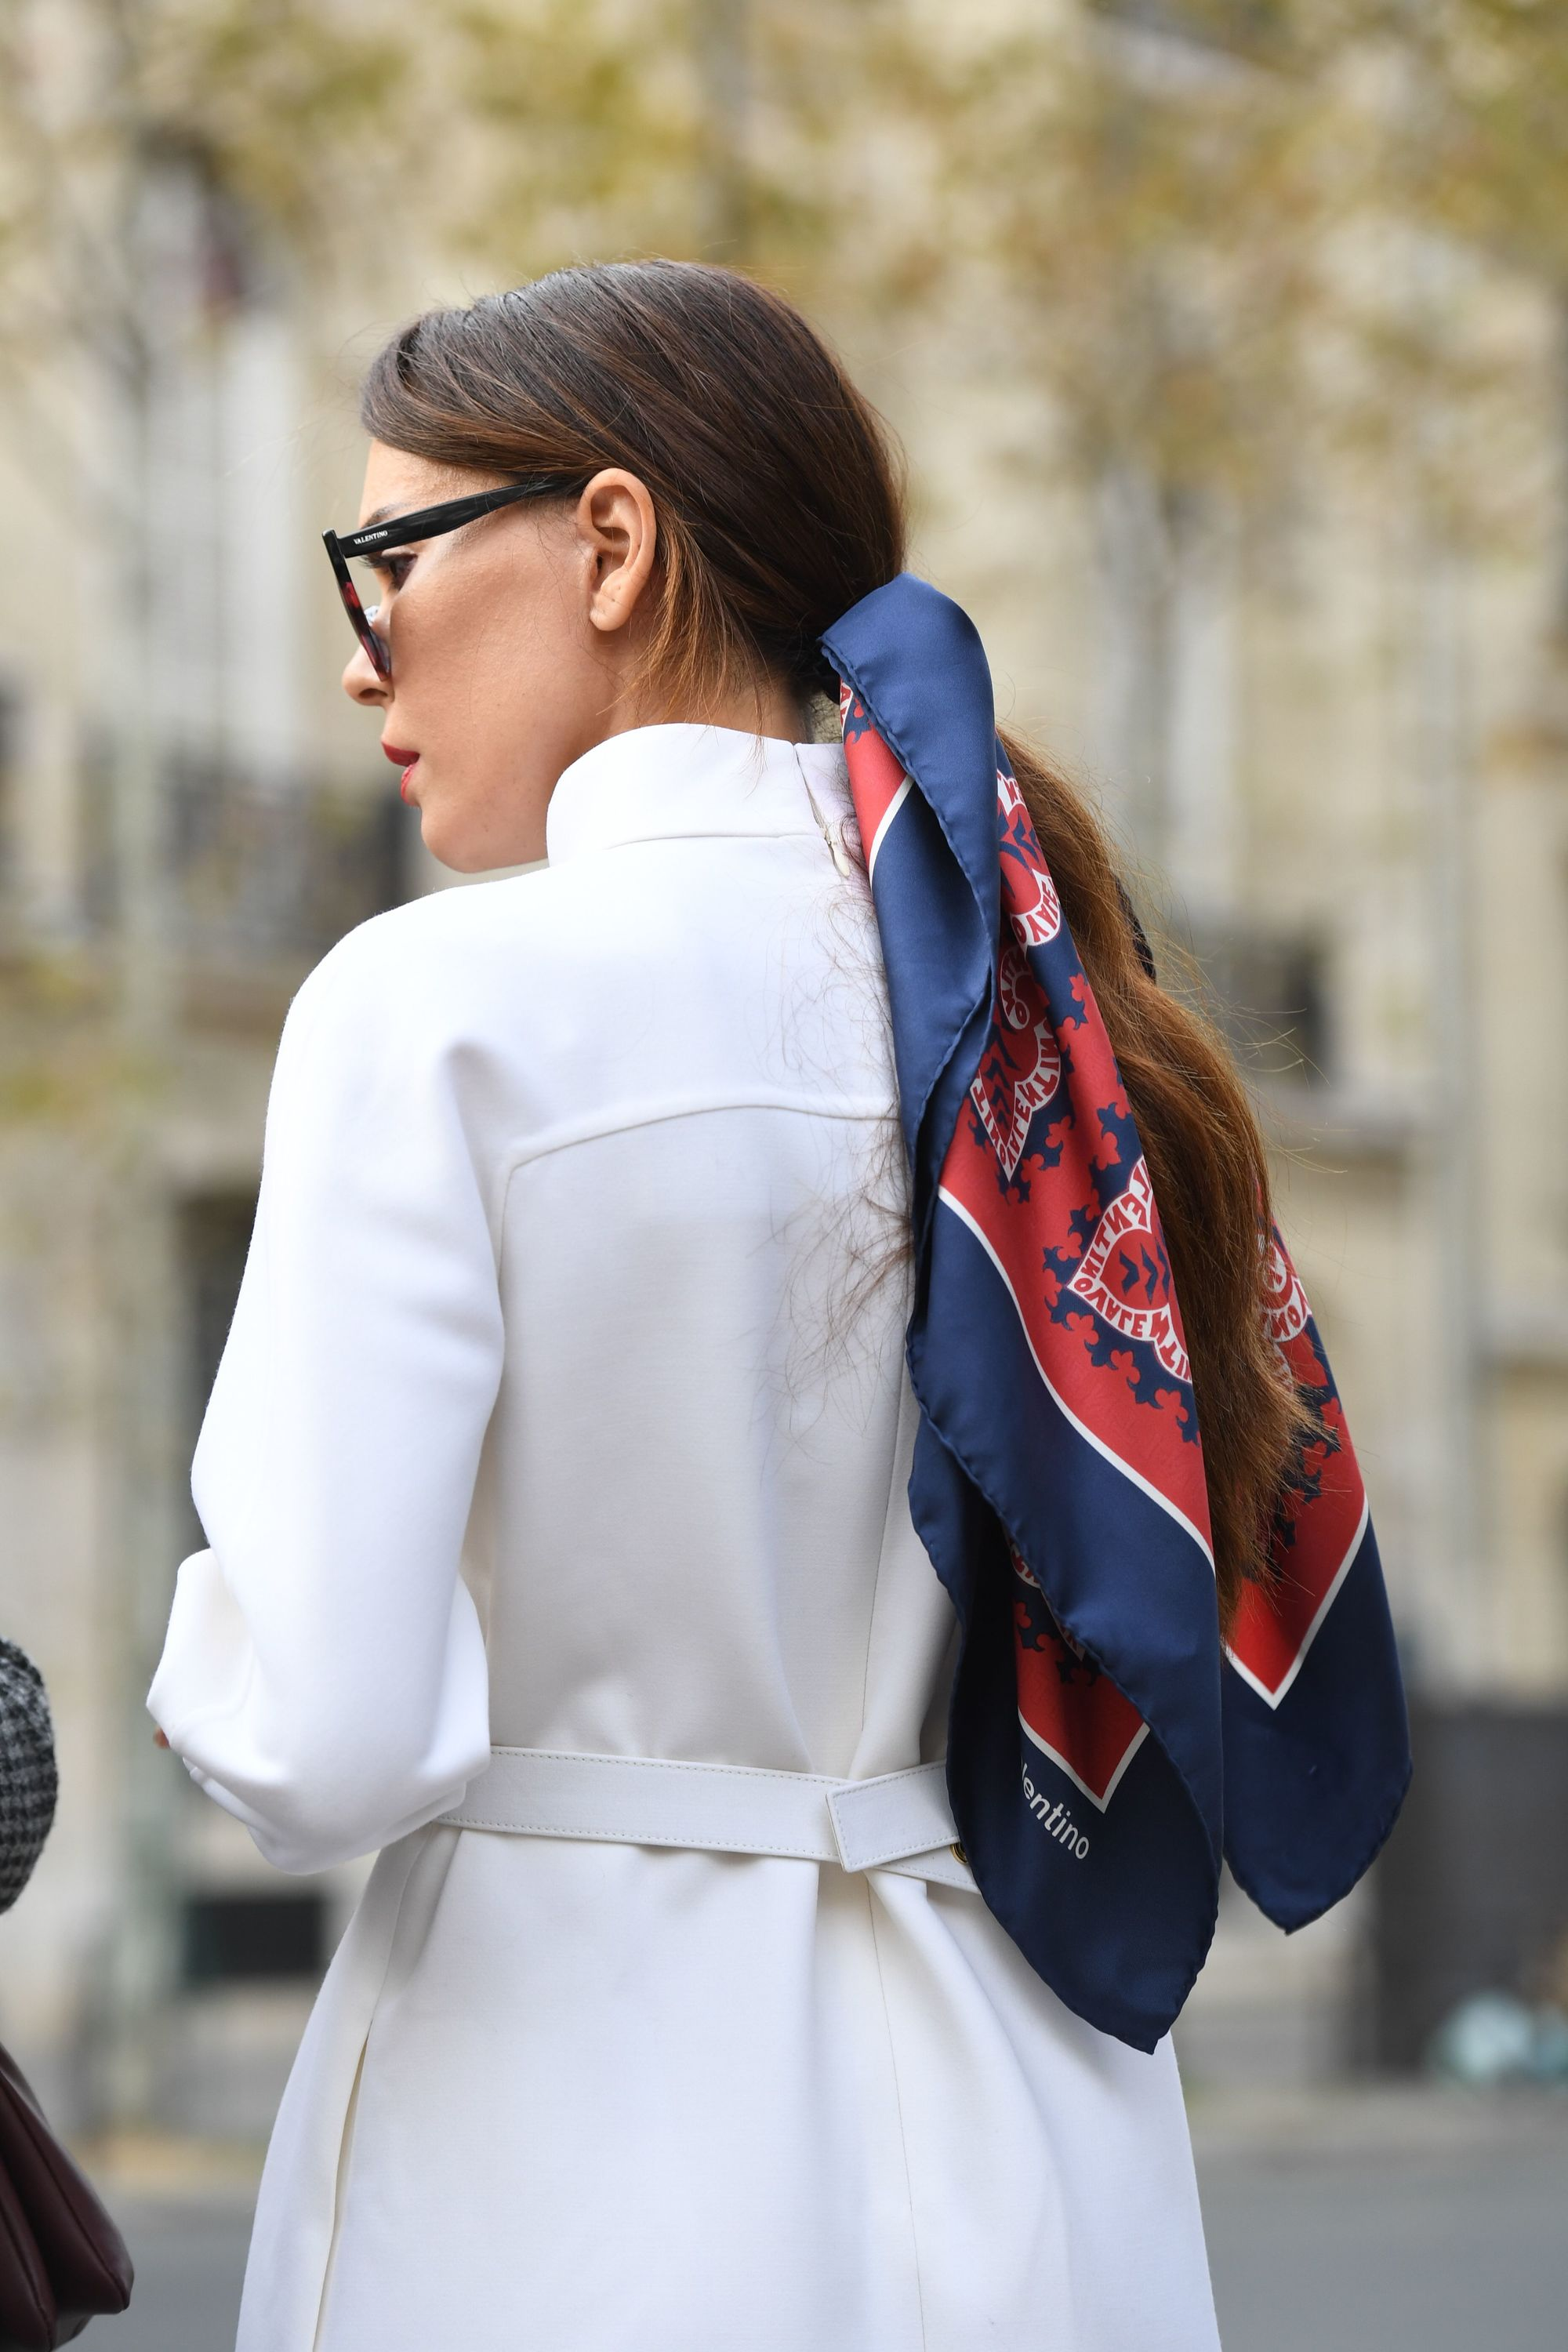 Winter hairstyles 2018: Back view of a brunette street styler with a long low ponytail tied with a blue and red patterned hair scarf